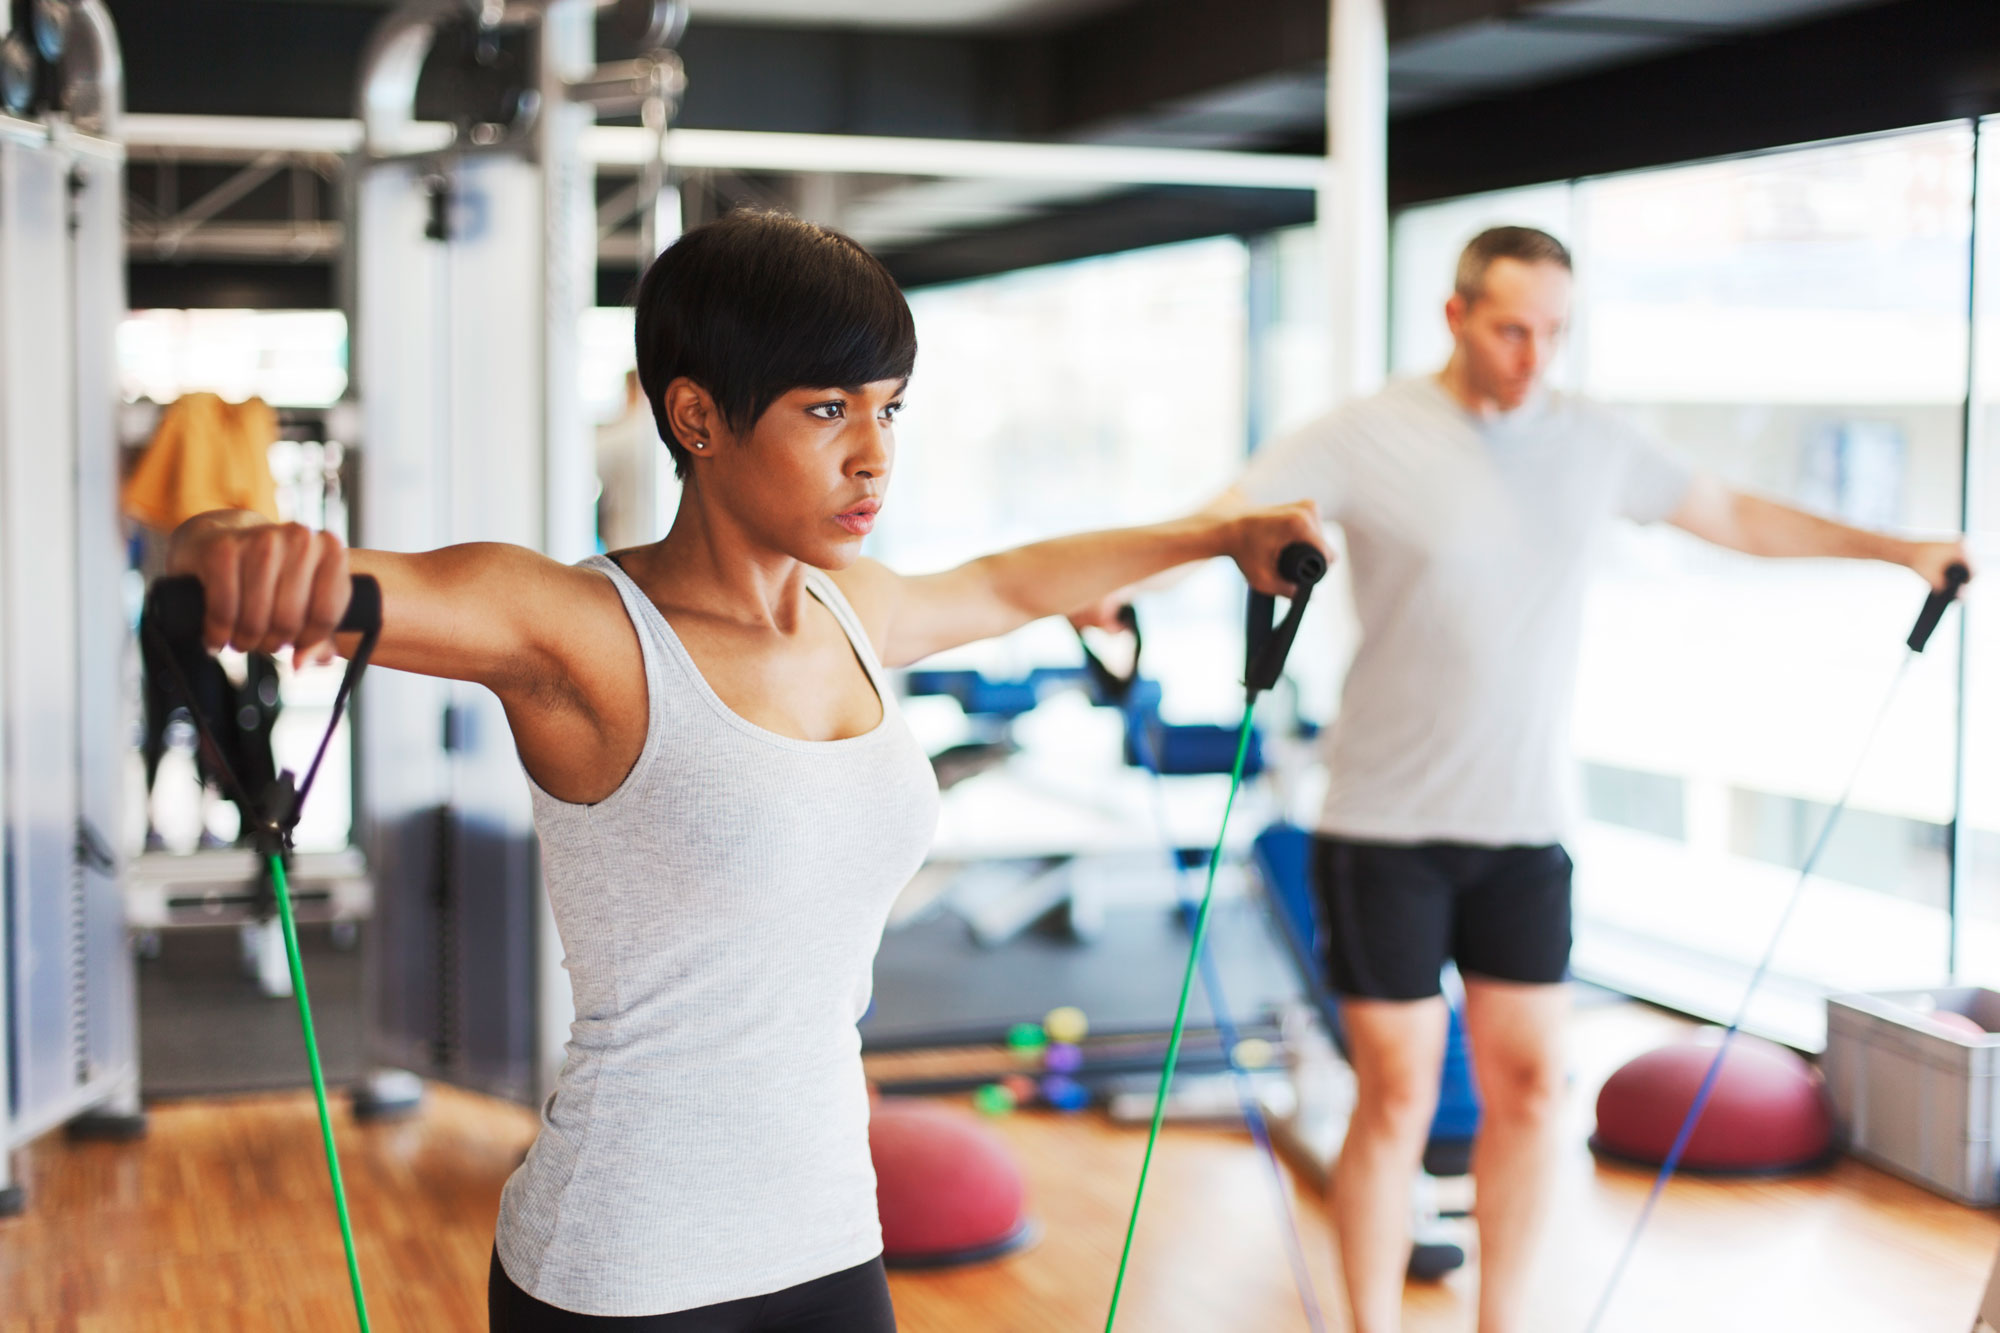 Exercising with fitness bands